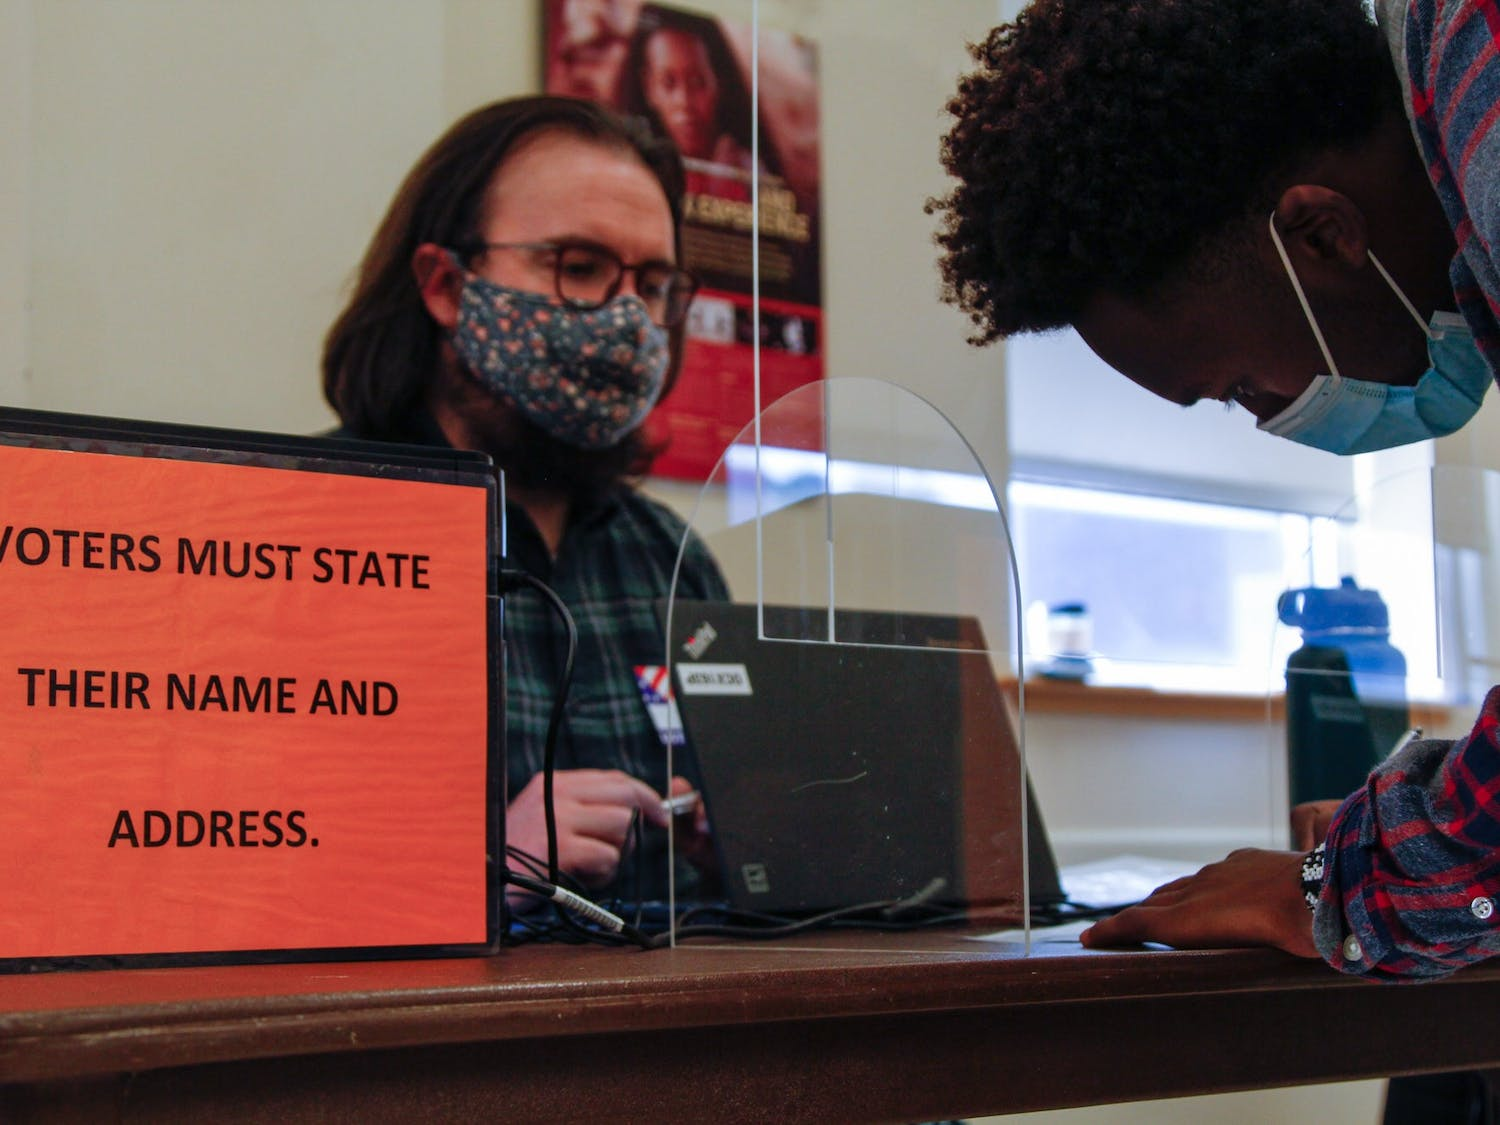 A student at UNC-Chapel Hill writes down their information in order to vote in the 2020 general election on Nov. 3, 2020 at the Stone Center polling location.